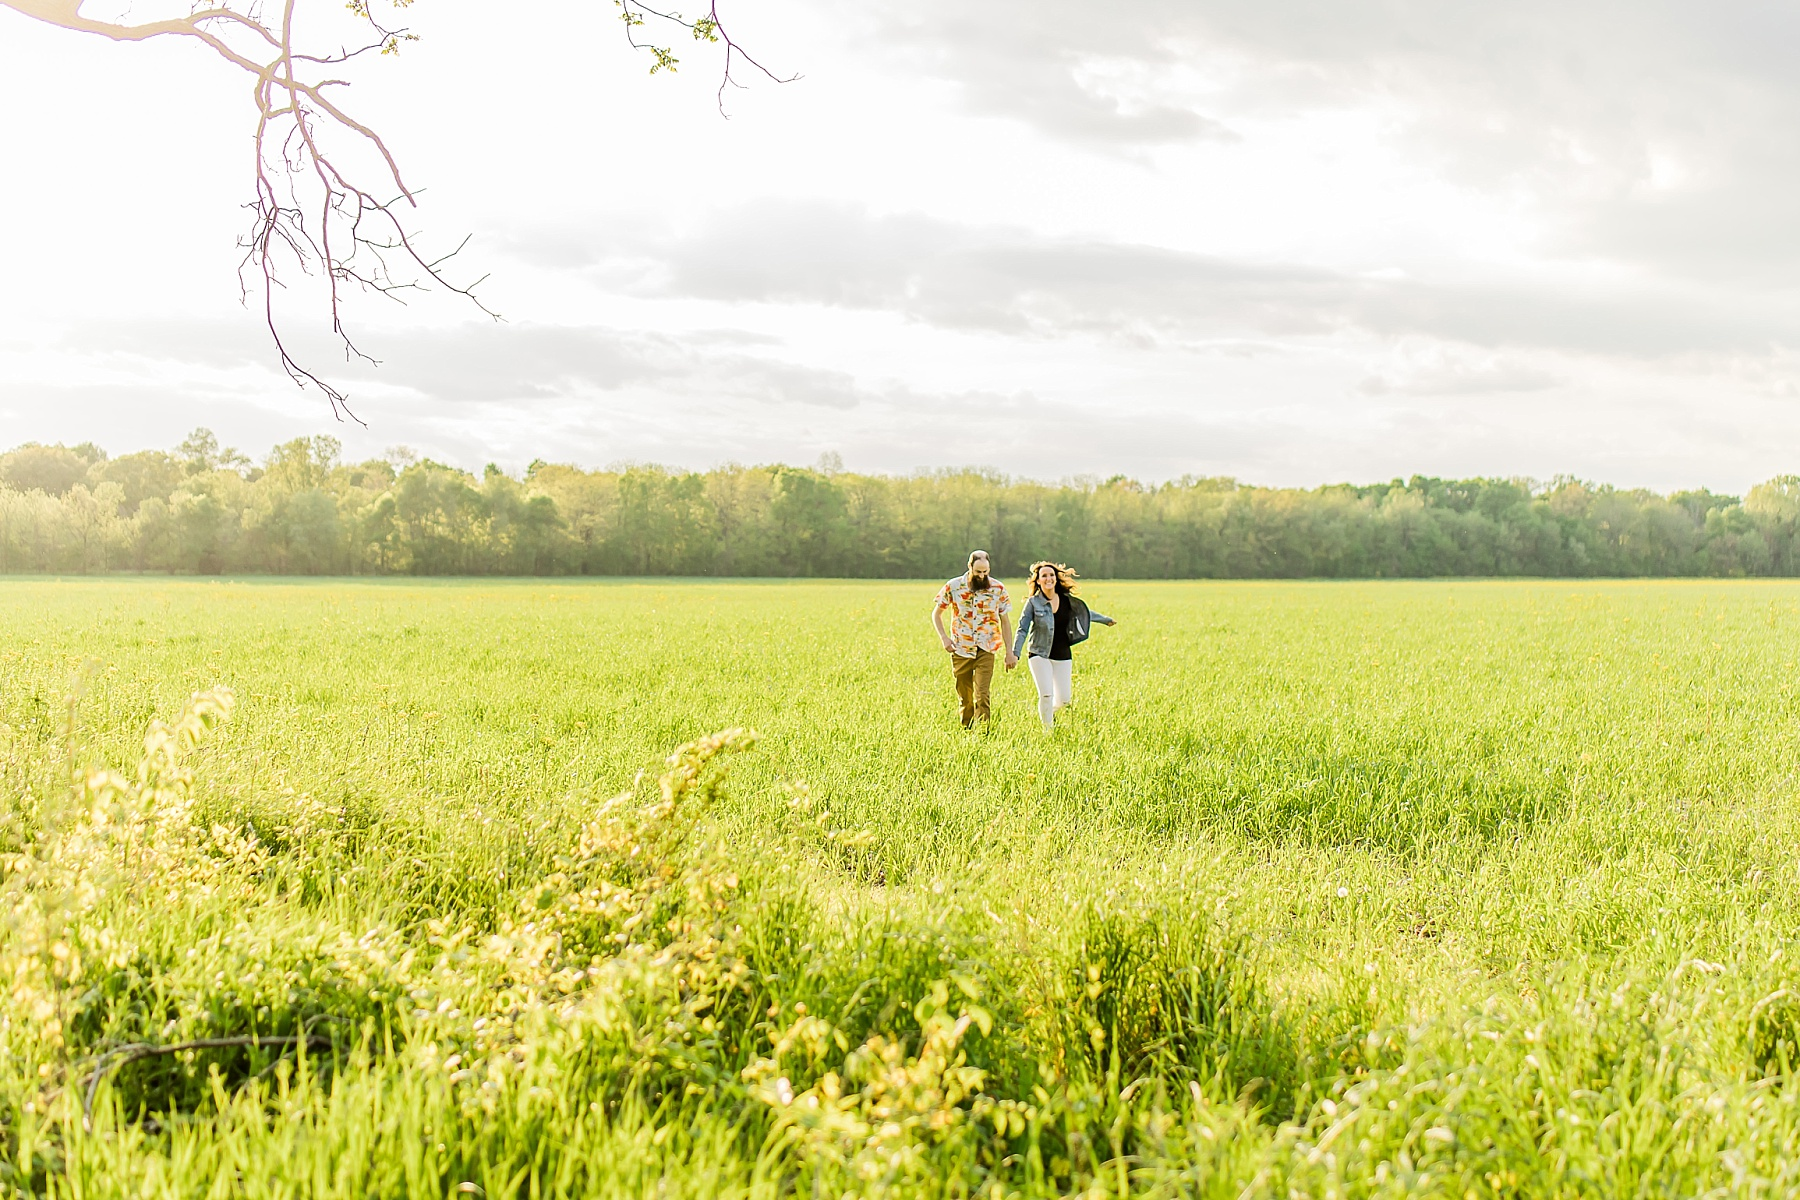 monticello indiana wedding engagement photography simple adventure weird_0048.jpg